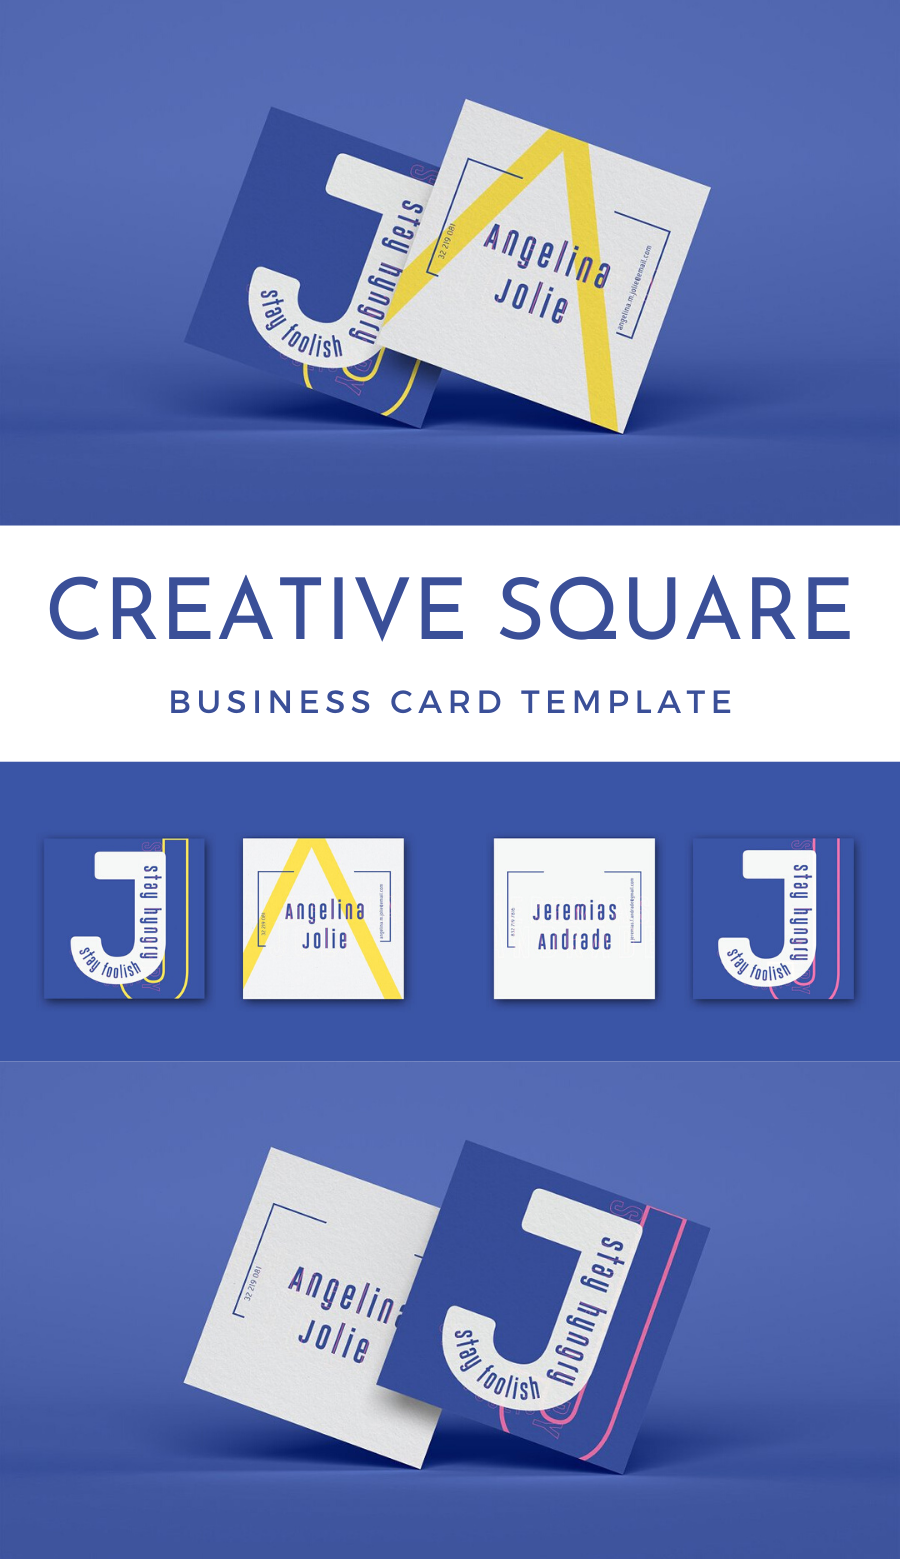 Creative Square Business Card Business Card Mock Up Business Cards Layout Design Business Card Ideas